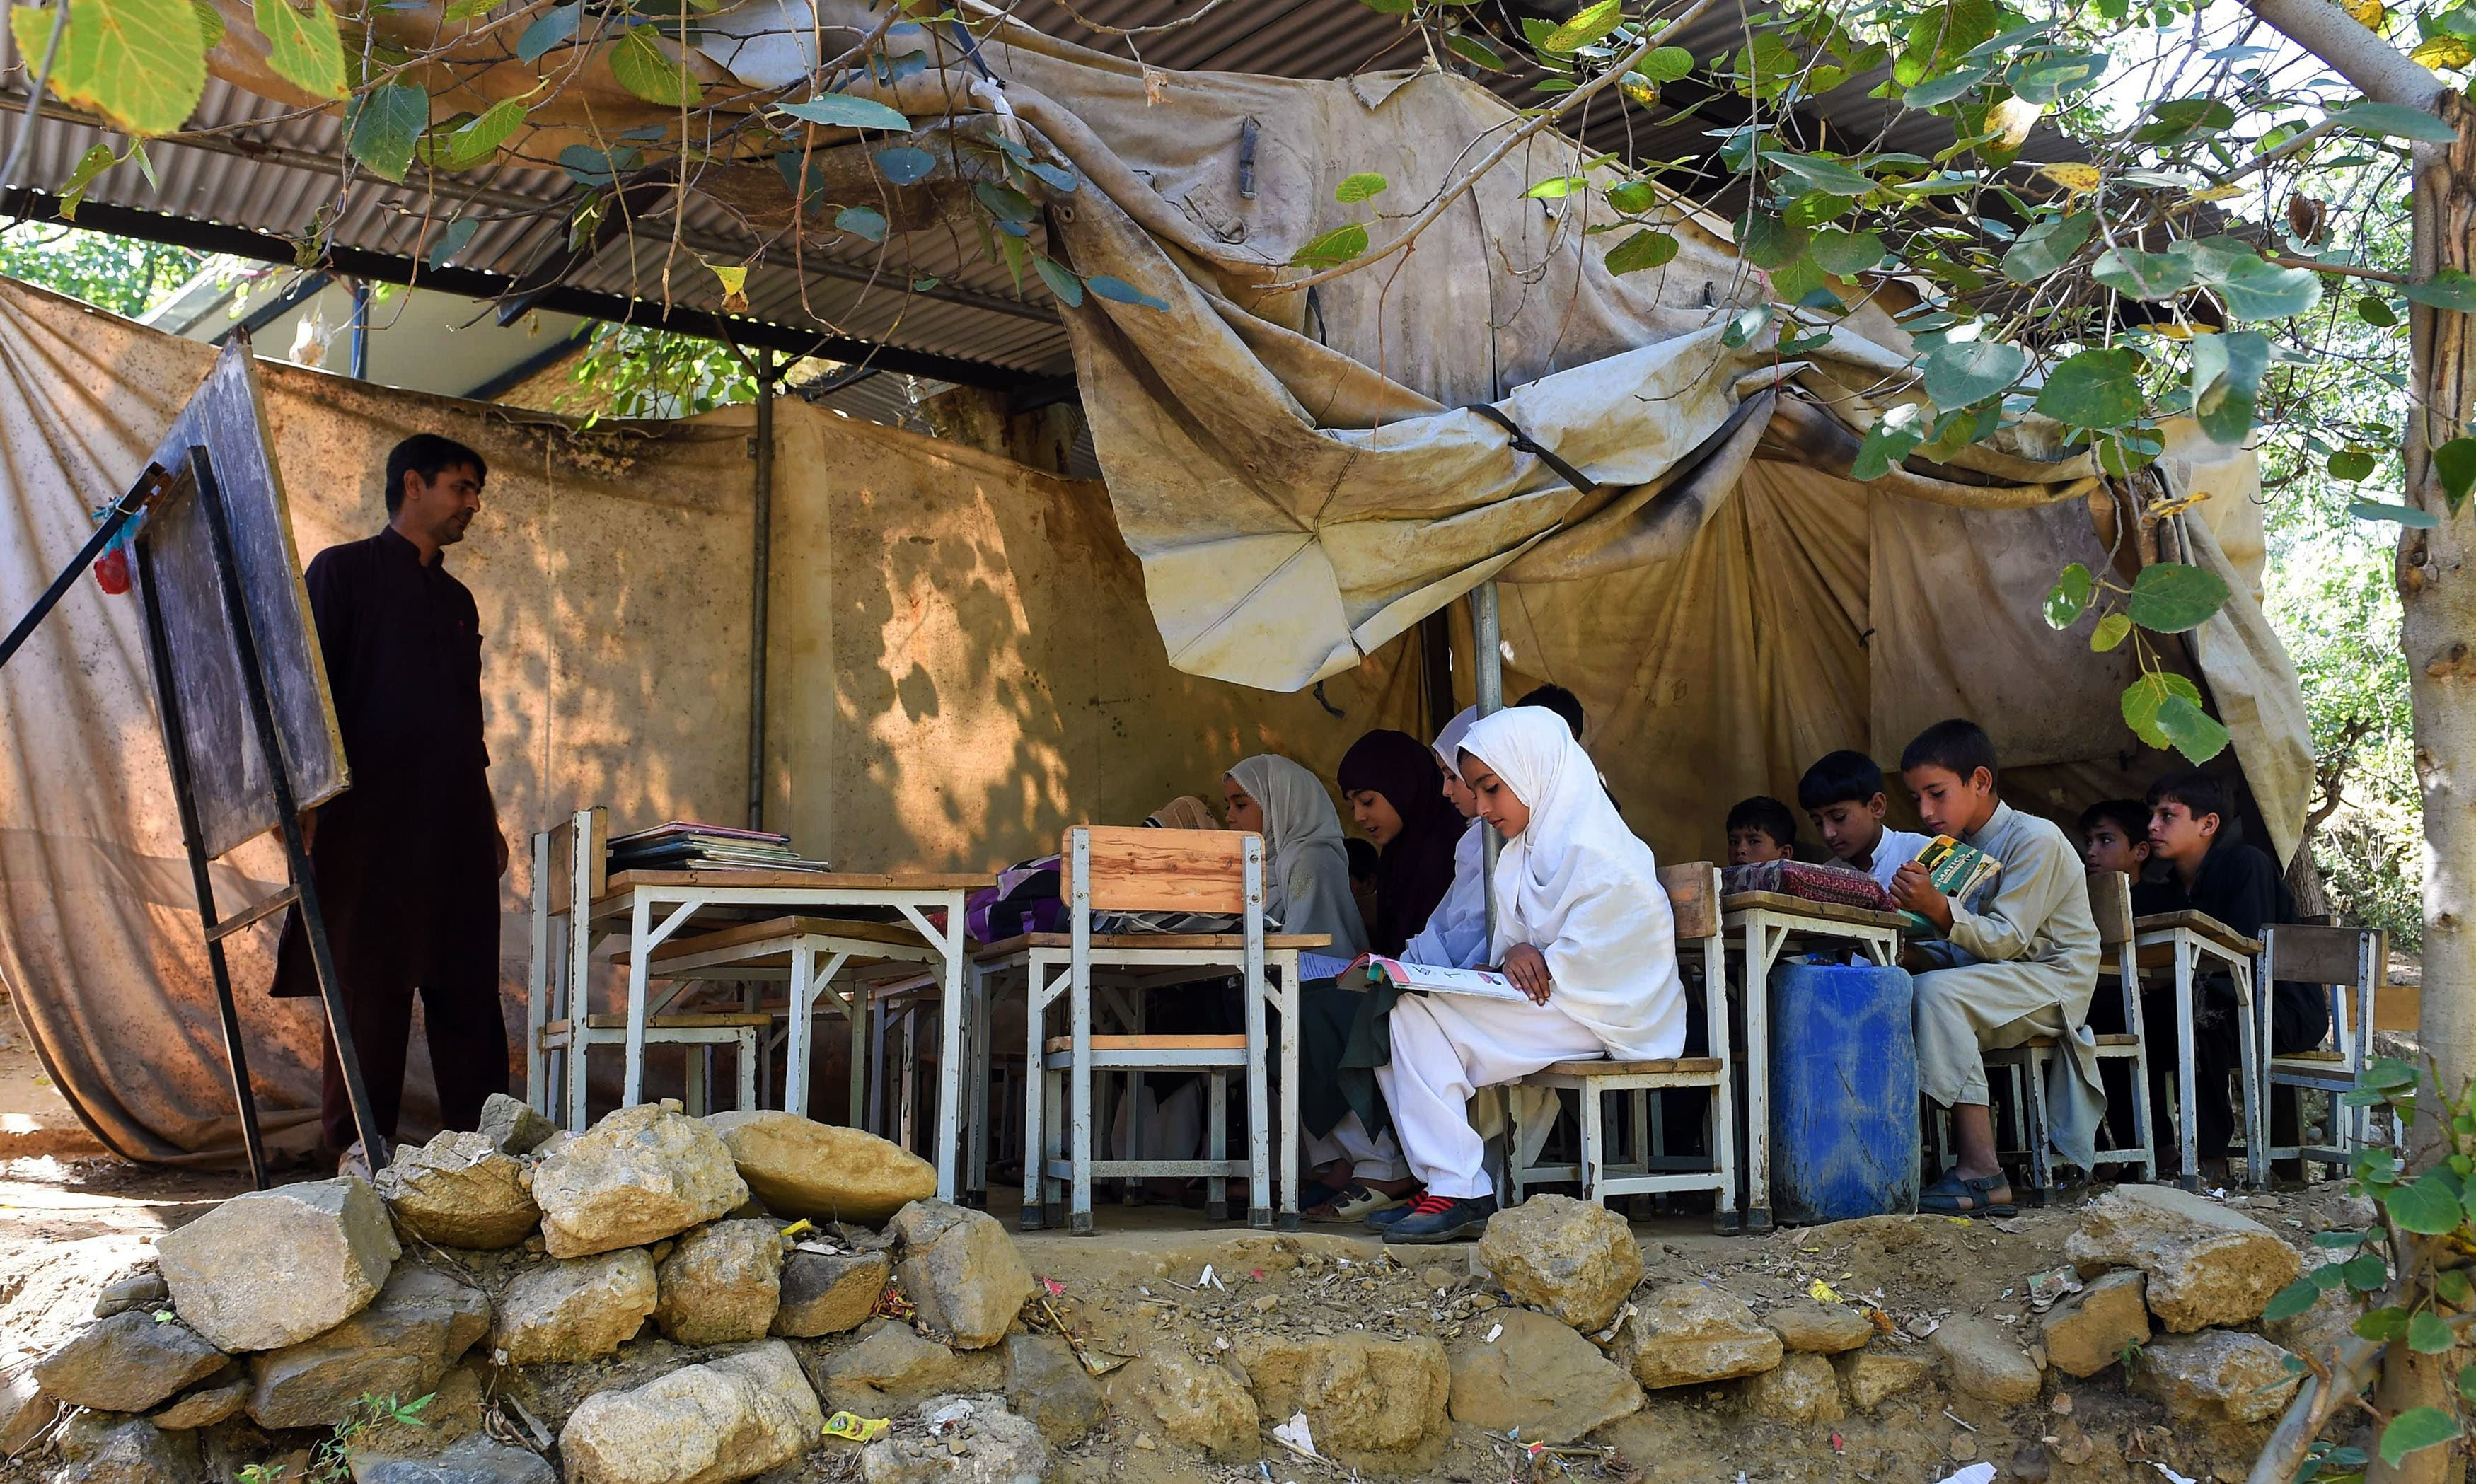 In this picture taken on September 18, 2018, children attend a class at a tent school in Tanjai Cheena, a village in Swat Valley. - At the Tanjai Cheena school in northwest Pakistan students squeeze into makeshift classrooms where plastic tarps serve as walls and electricity is sparse, as a surging population overstretches the country's fragile education system. (Photo by FAROOQ NAEEM / AFP) / TO GO WITH Pakistan-education-demographics,FOCUS by Joris FIORITI — AFP or licensors